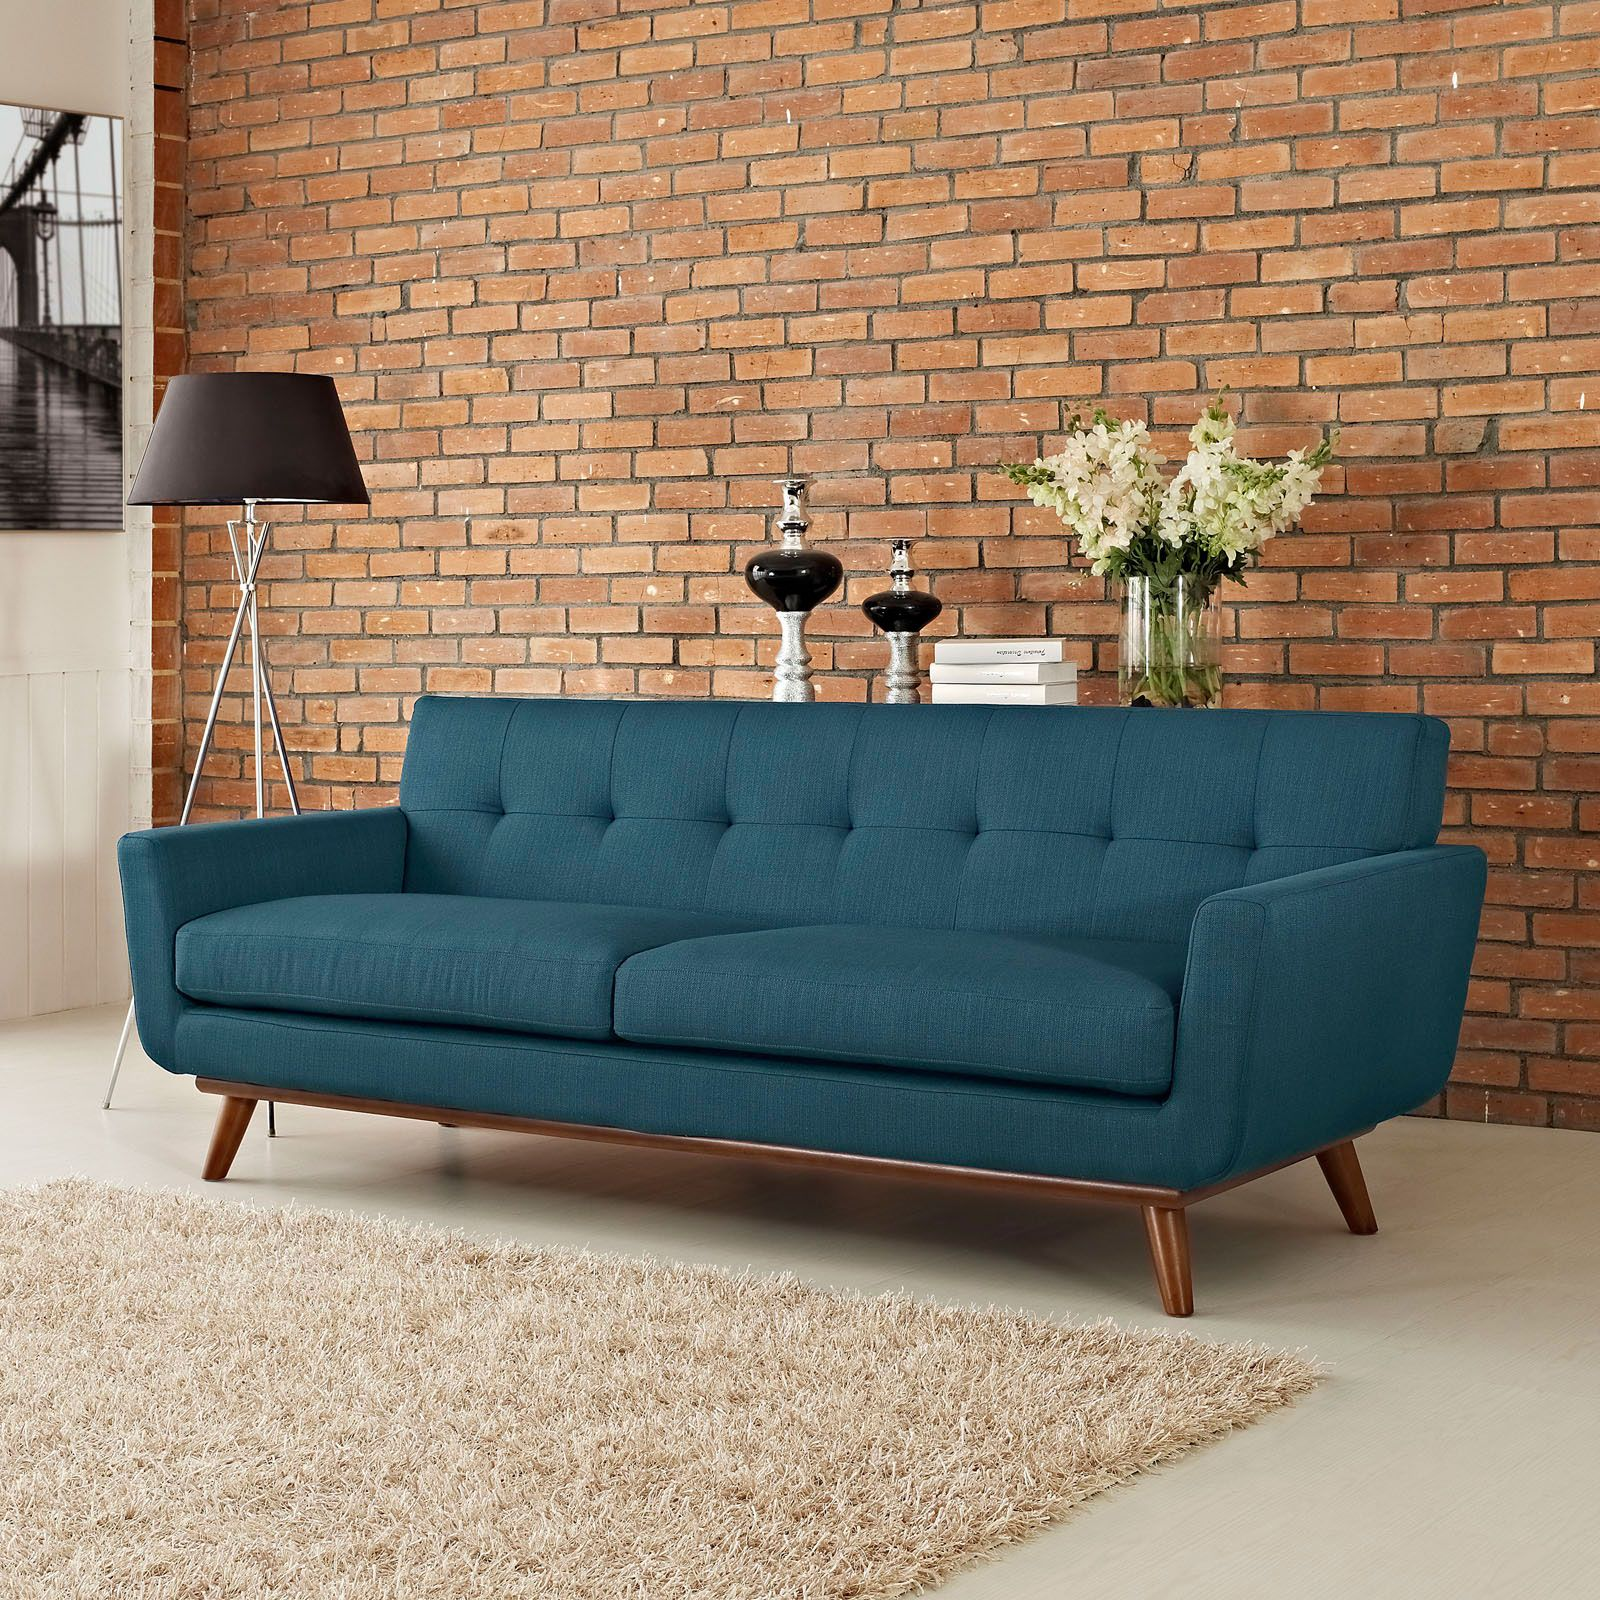 Sofa Vs Couch : The Difference Between A Sofa And A Couch Tags: Sofa Or